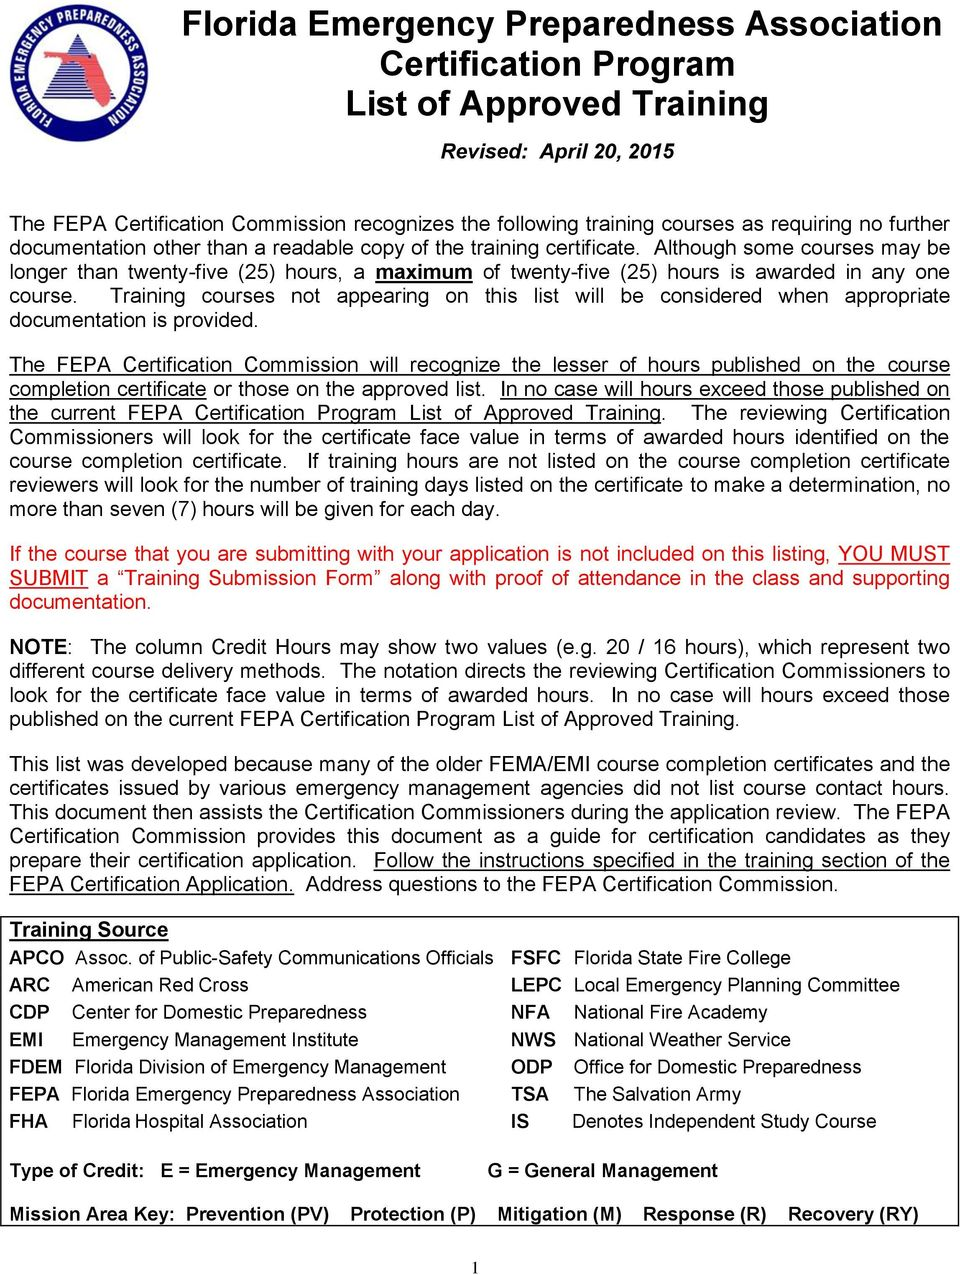 Florida Emergency Preparedness Association Certification Program